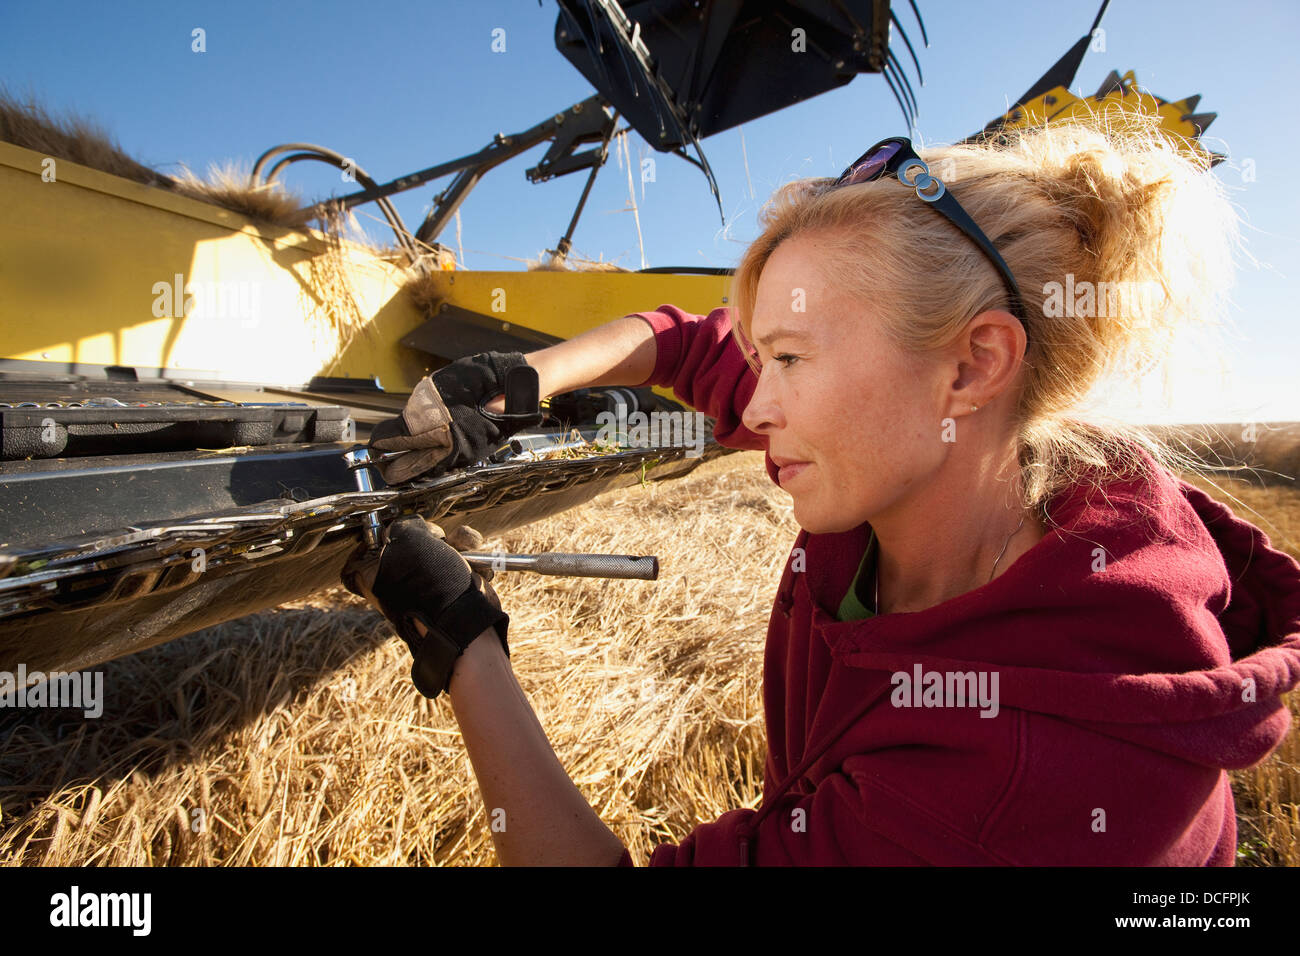 A Woman Works On A Combine In A Wheat Field; Three Hills, Alberta, Canada - Stock Image